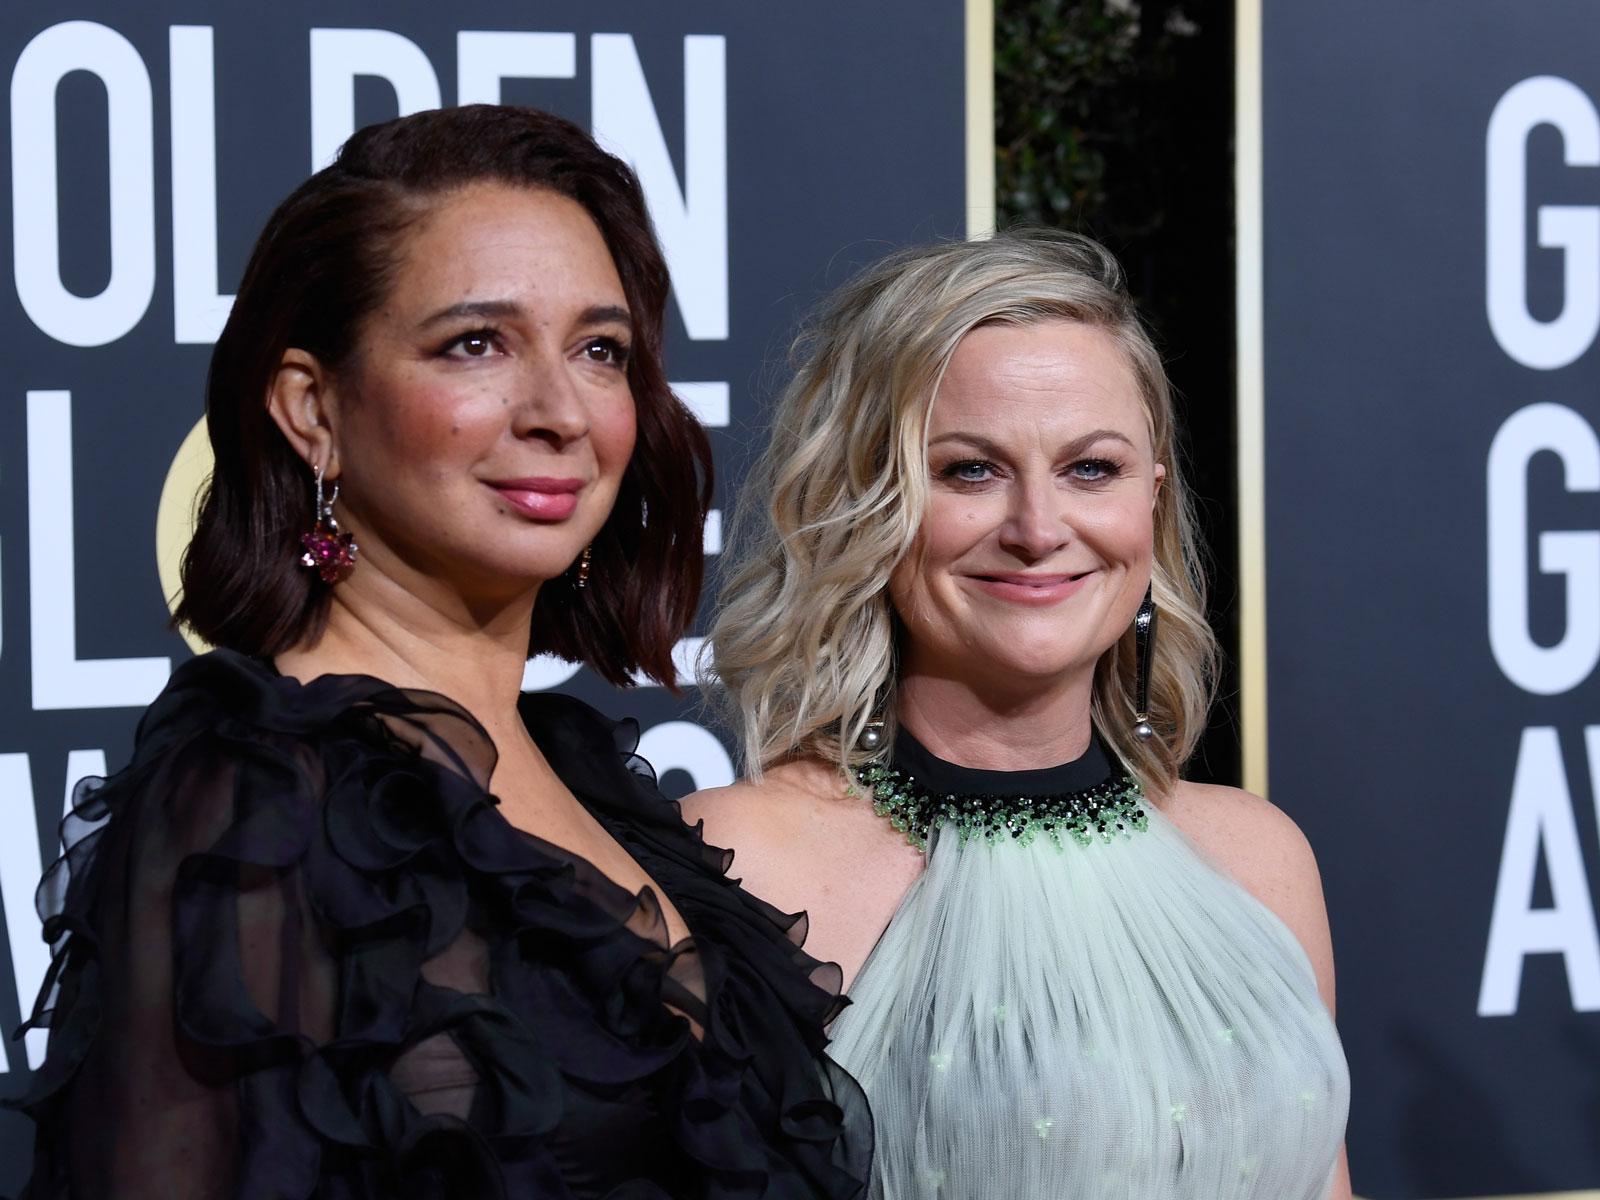 Amy Poehler's 'Wine Country' Movie Was Inspired by Real Trips to Napa Valley With Her 'SNL' Pals